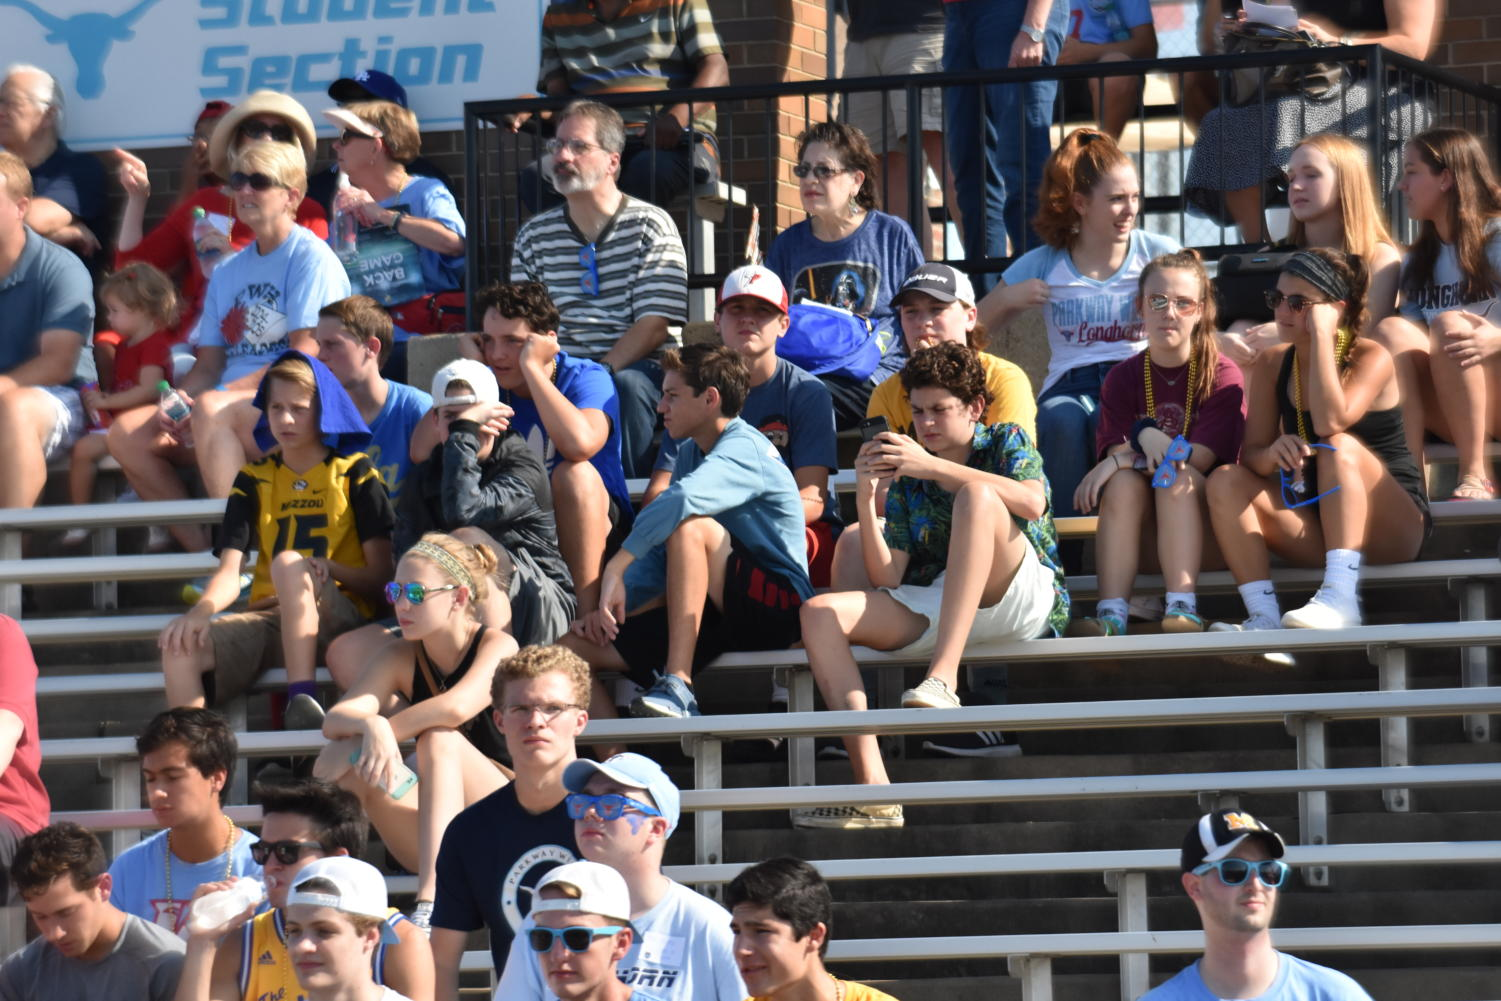 During the home football game against Ladue, the student section, which includes parents, is sparse.